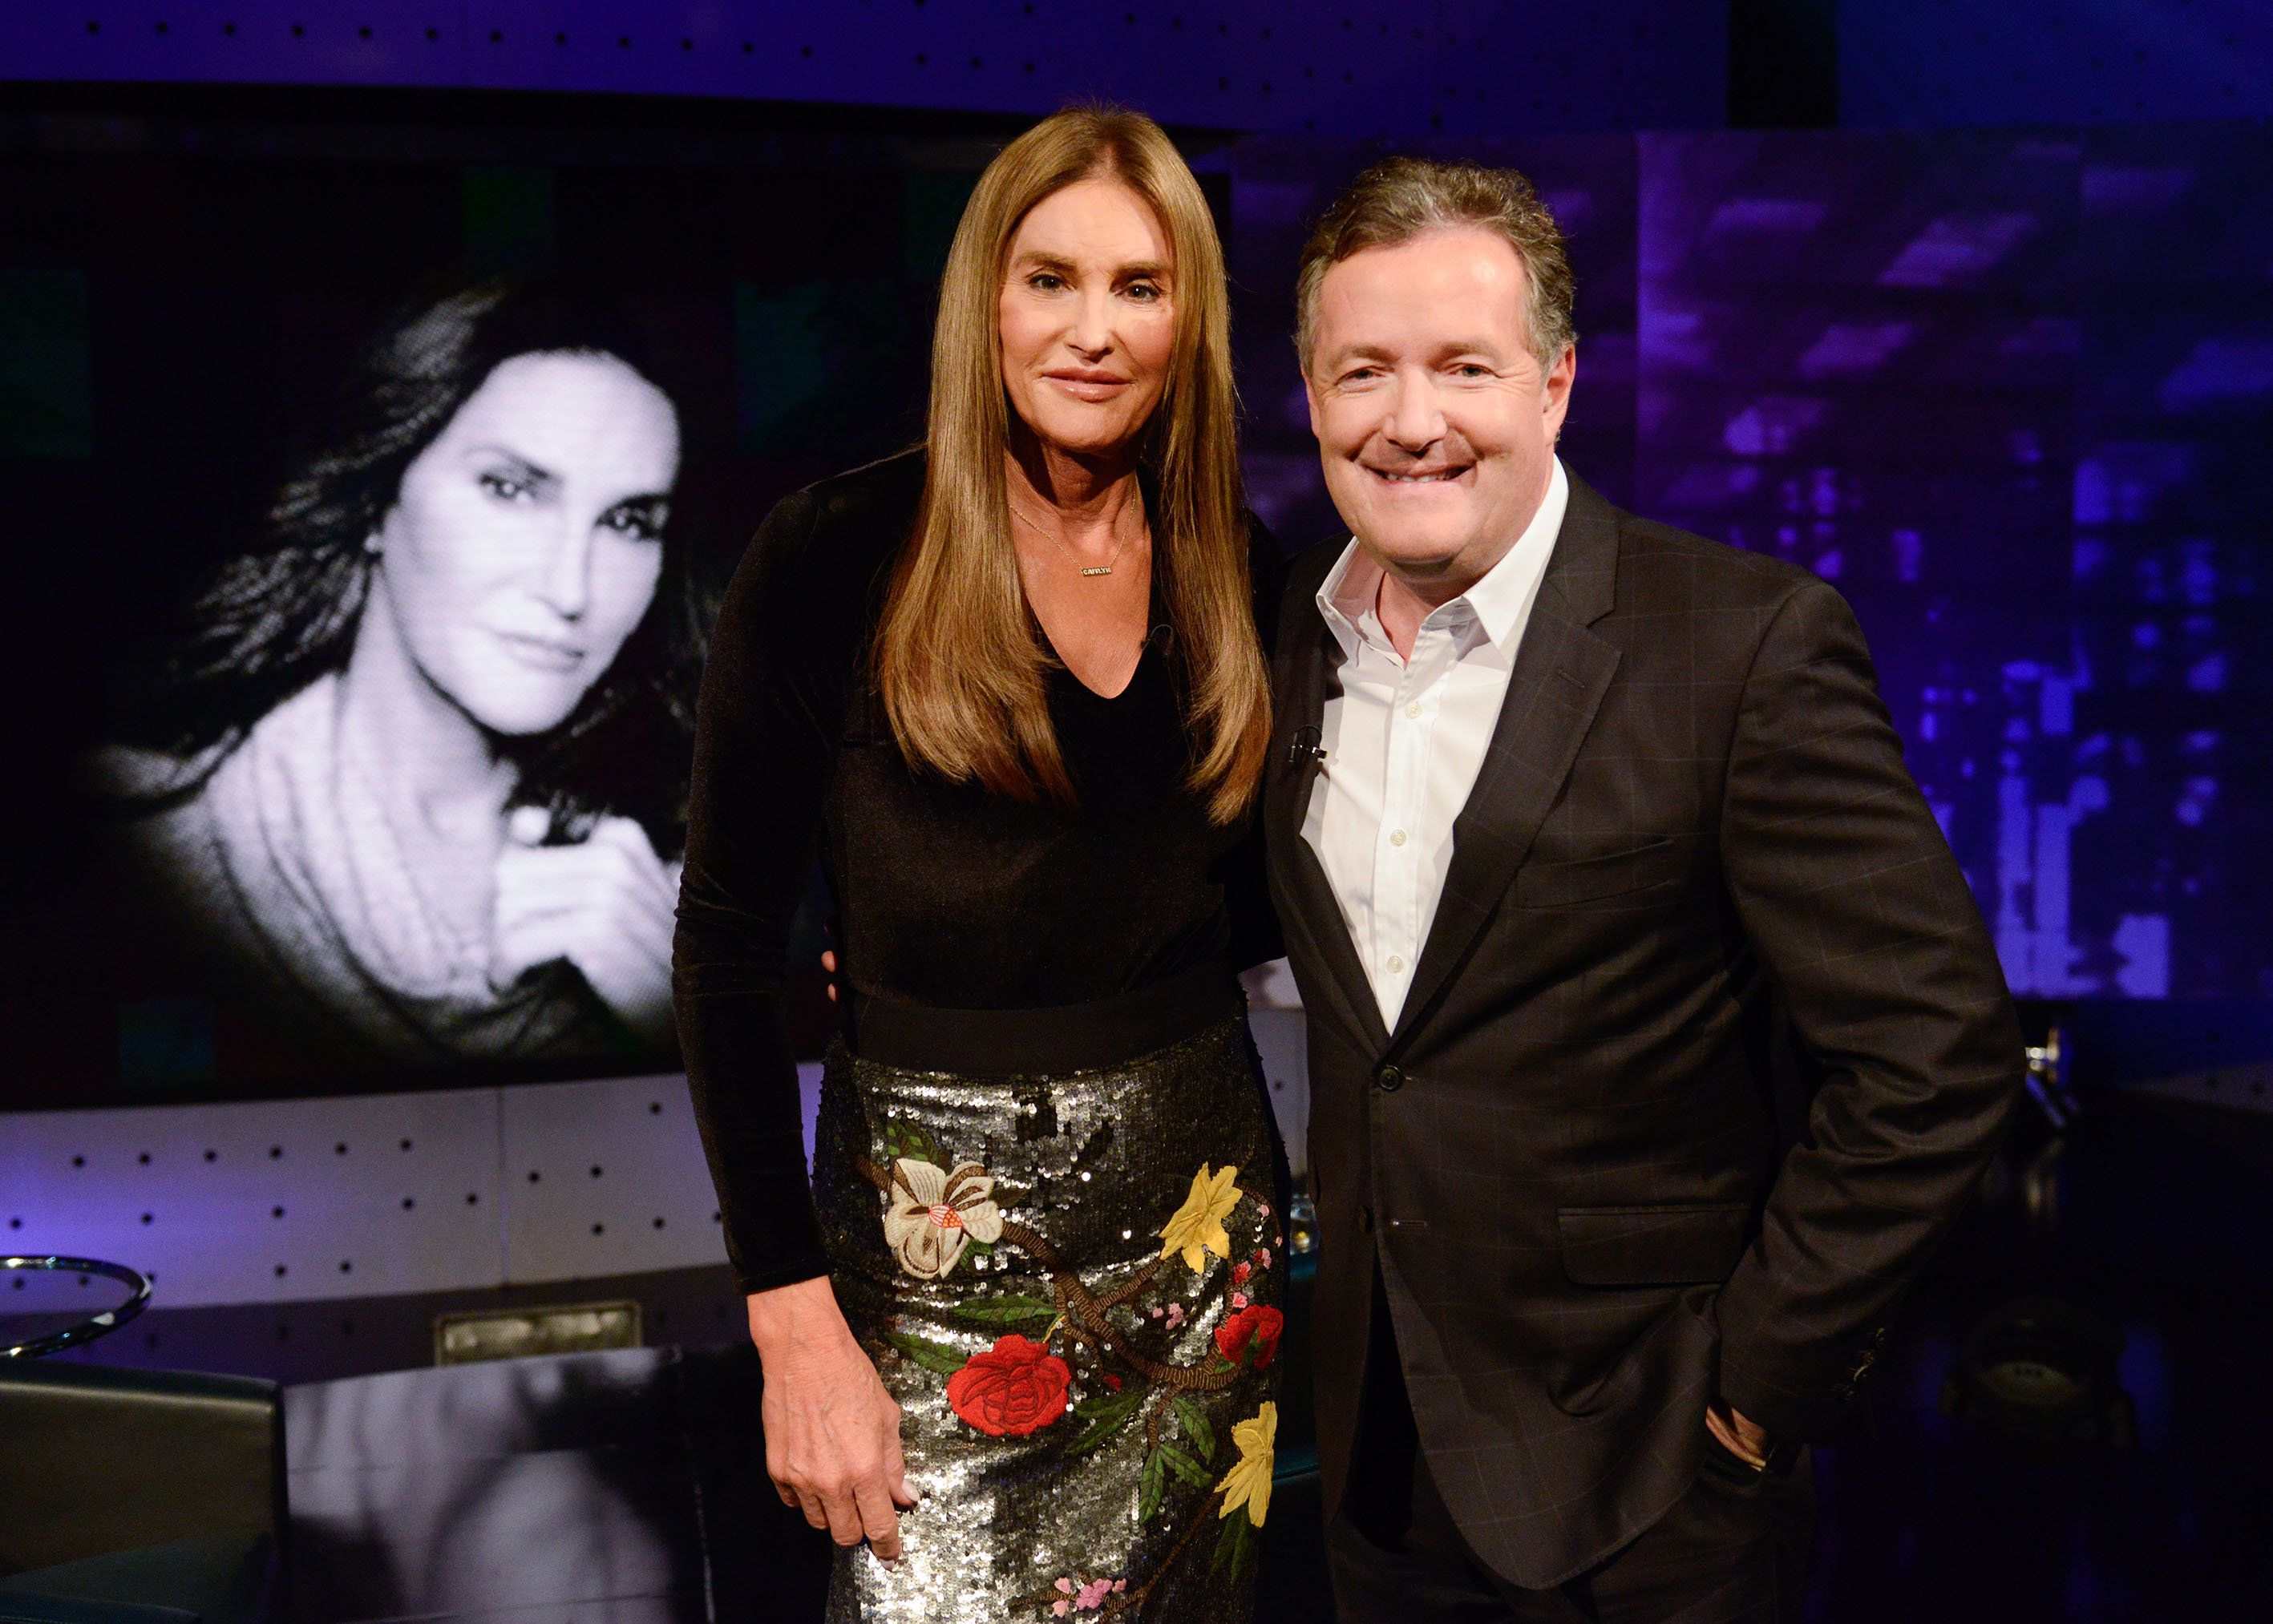 Caitlyn Jenner and Piers